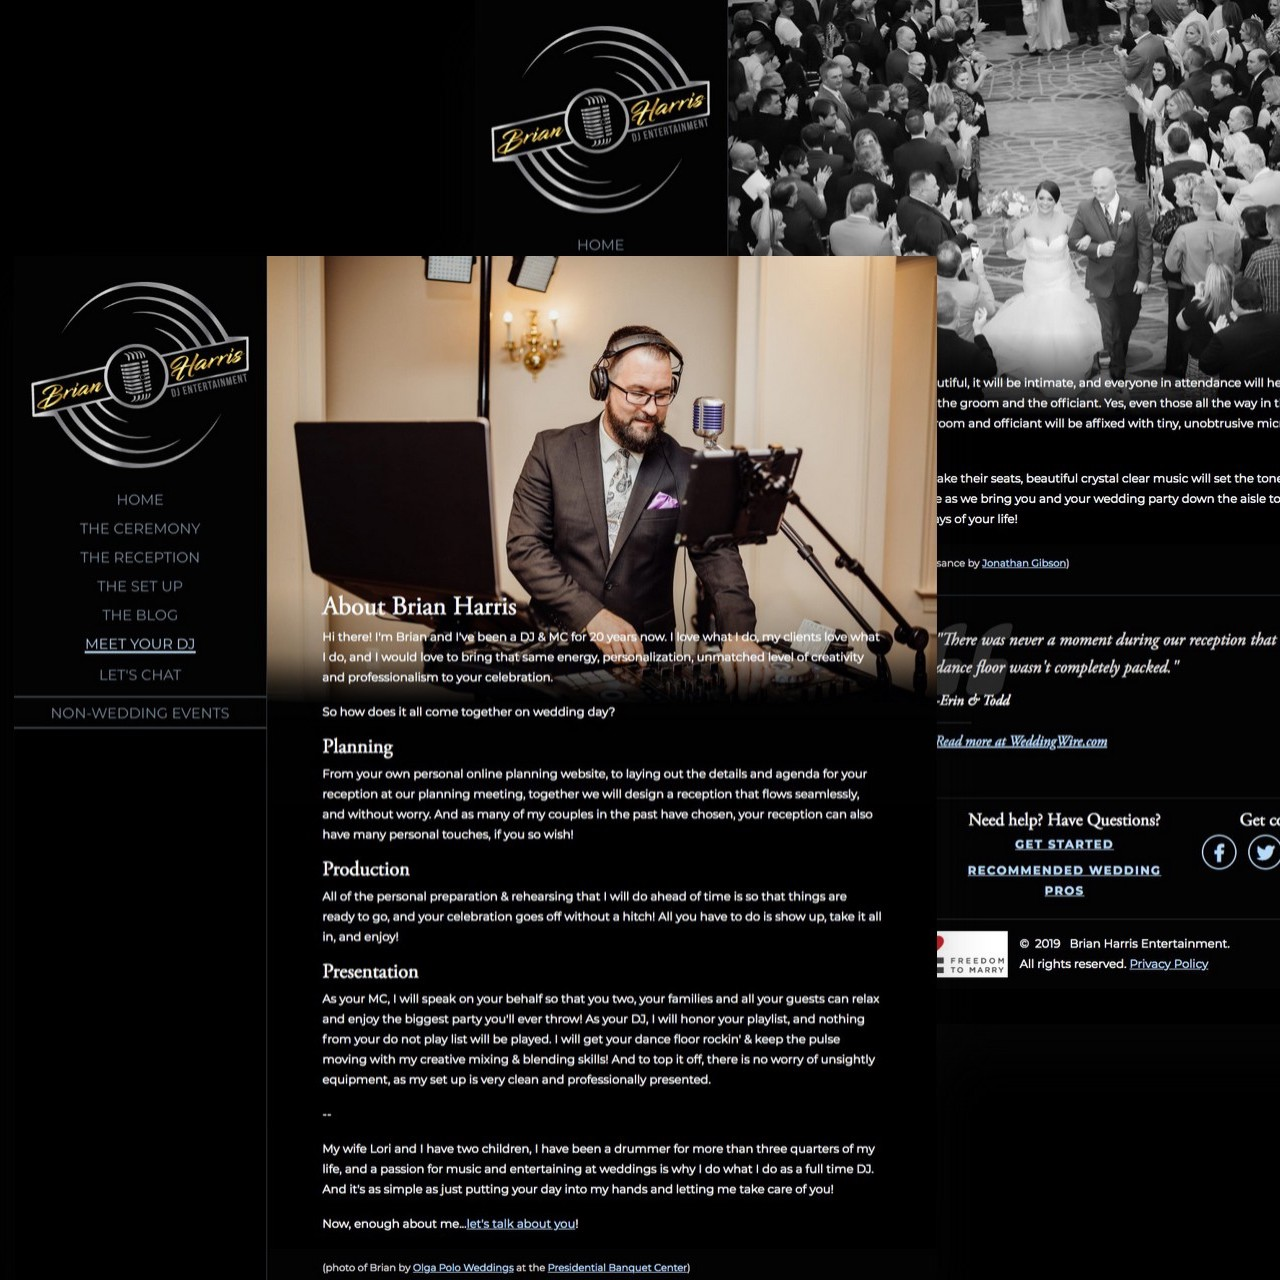 Full screens of Ceremony and About page on Brian Harris Entertainment dot com.